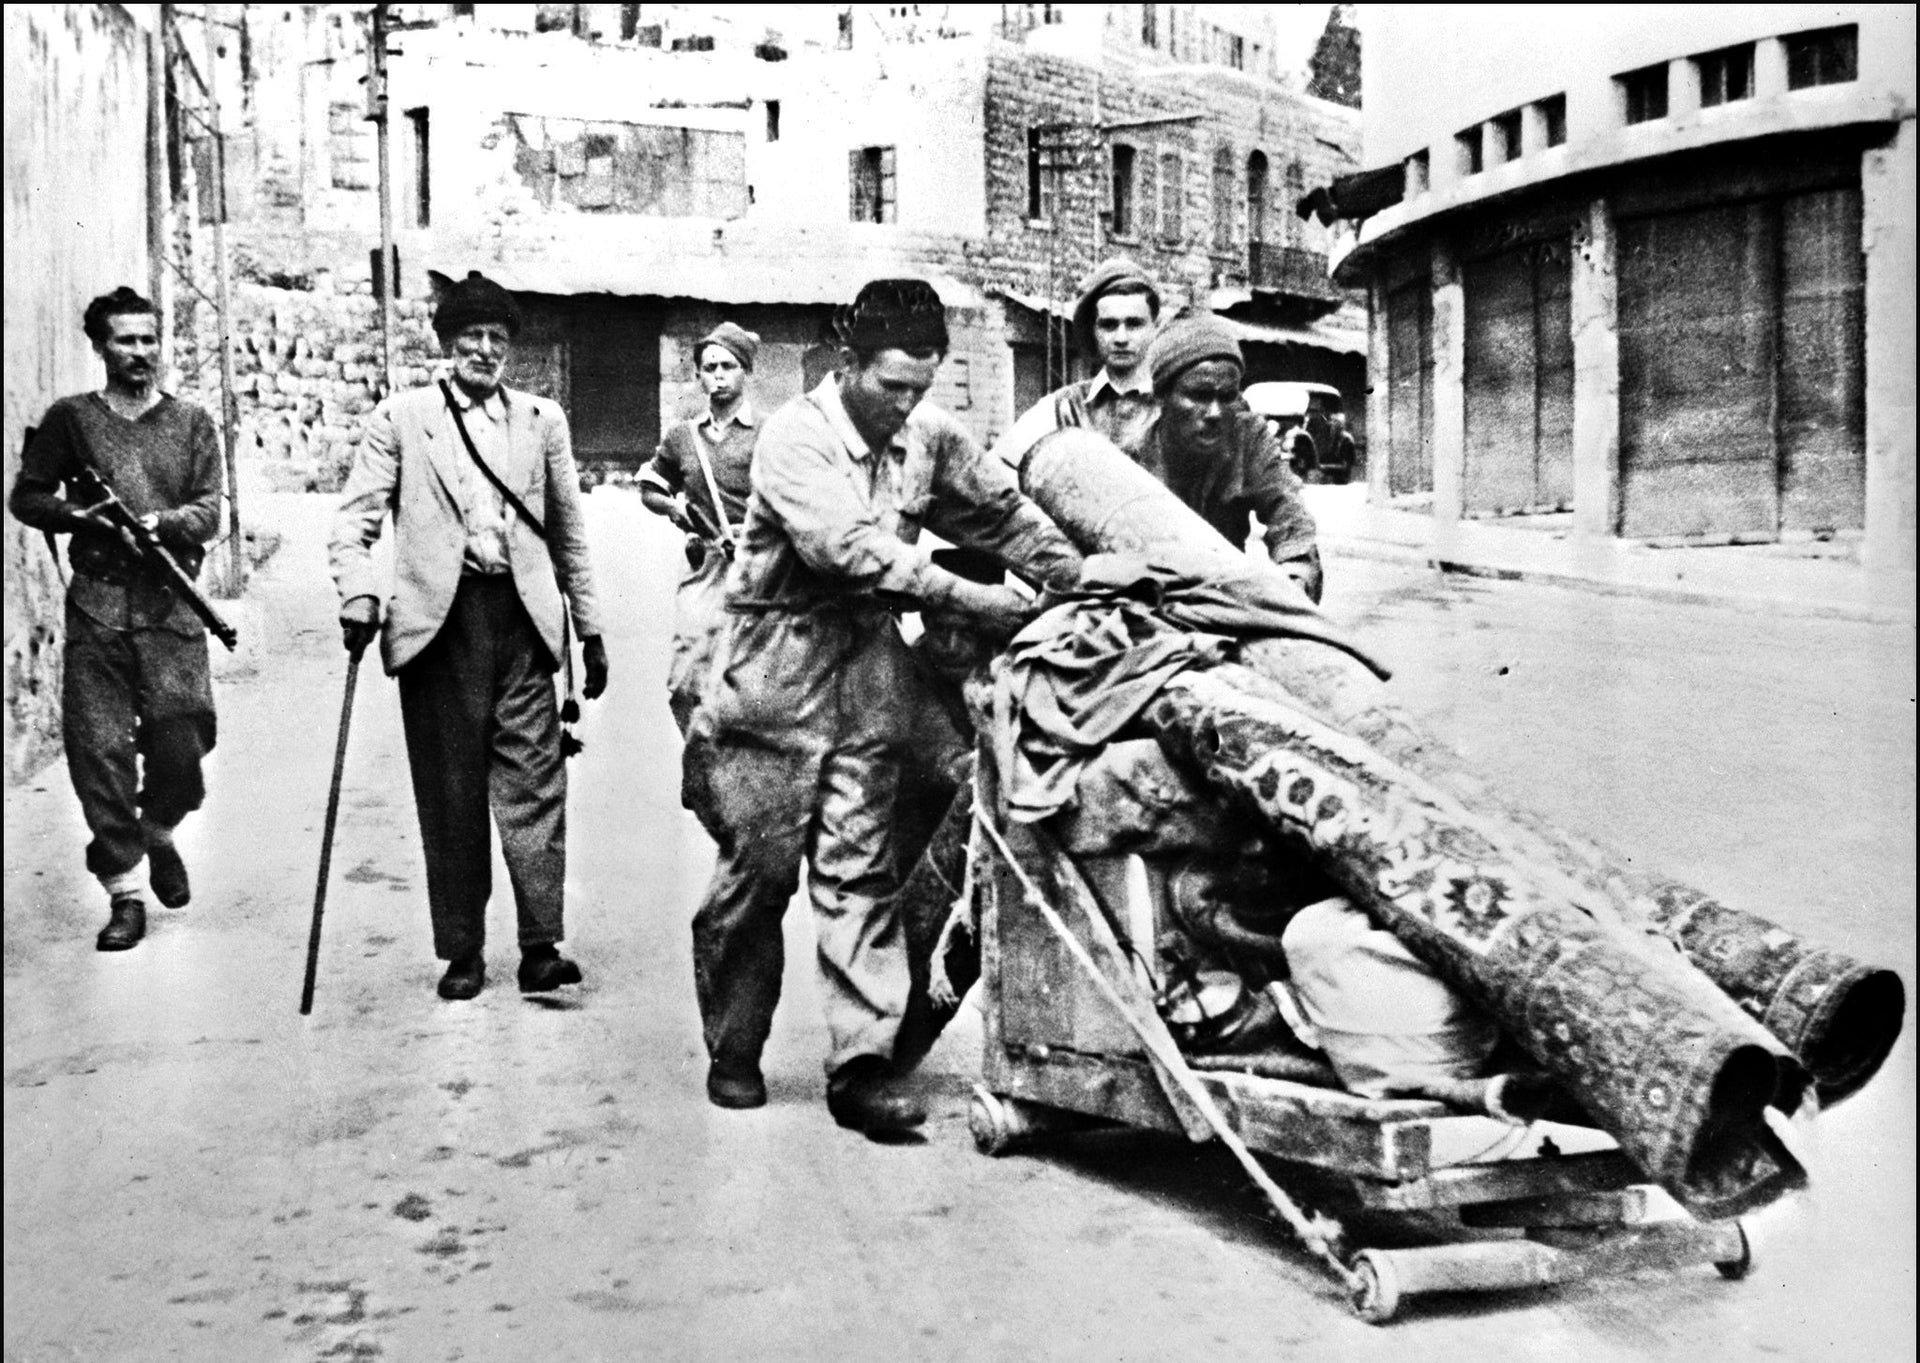 Three members of the Haganah (the pre-independence Jewish militia in British Mandatory Palestine) escorting Palestinian Arabs out of Haifa after they were expelled from their homes, May 12, 1948.